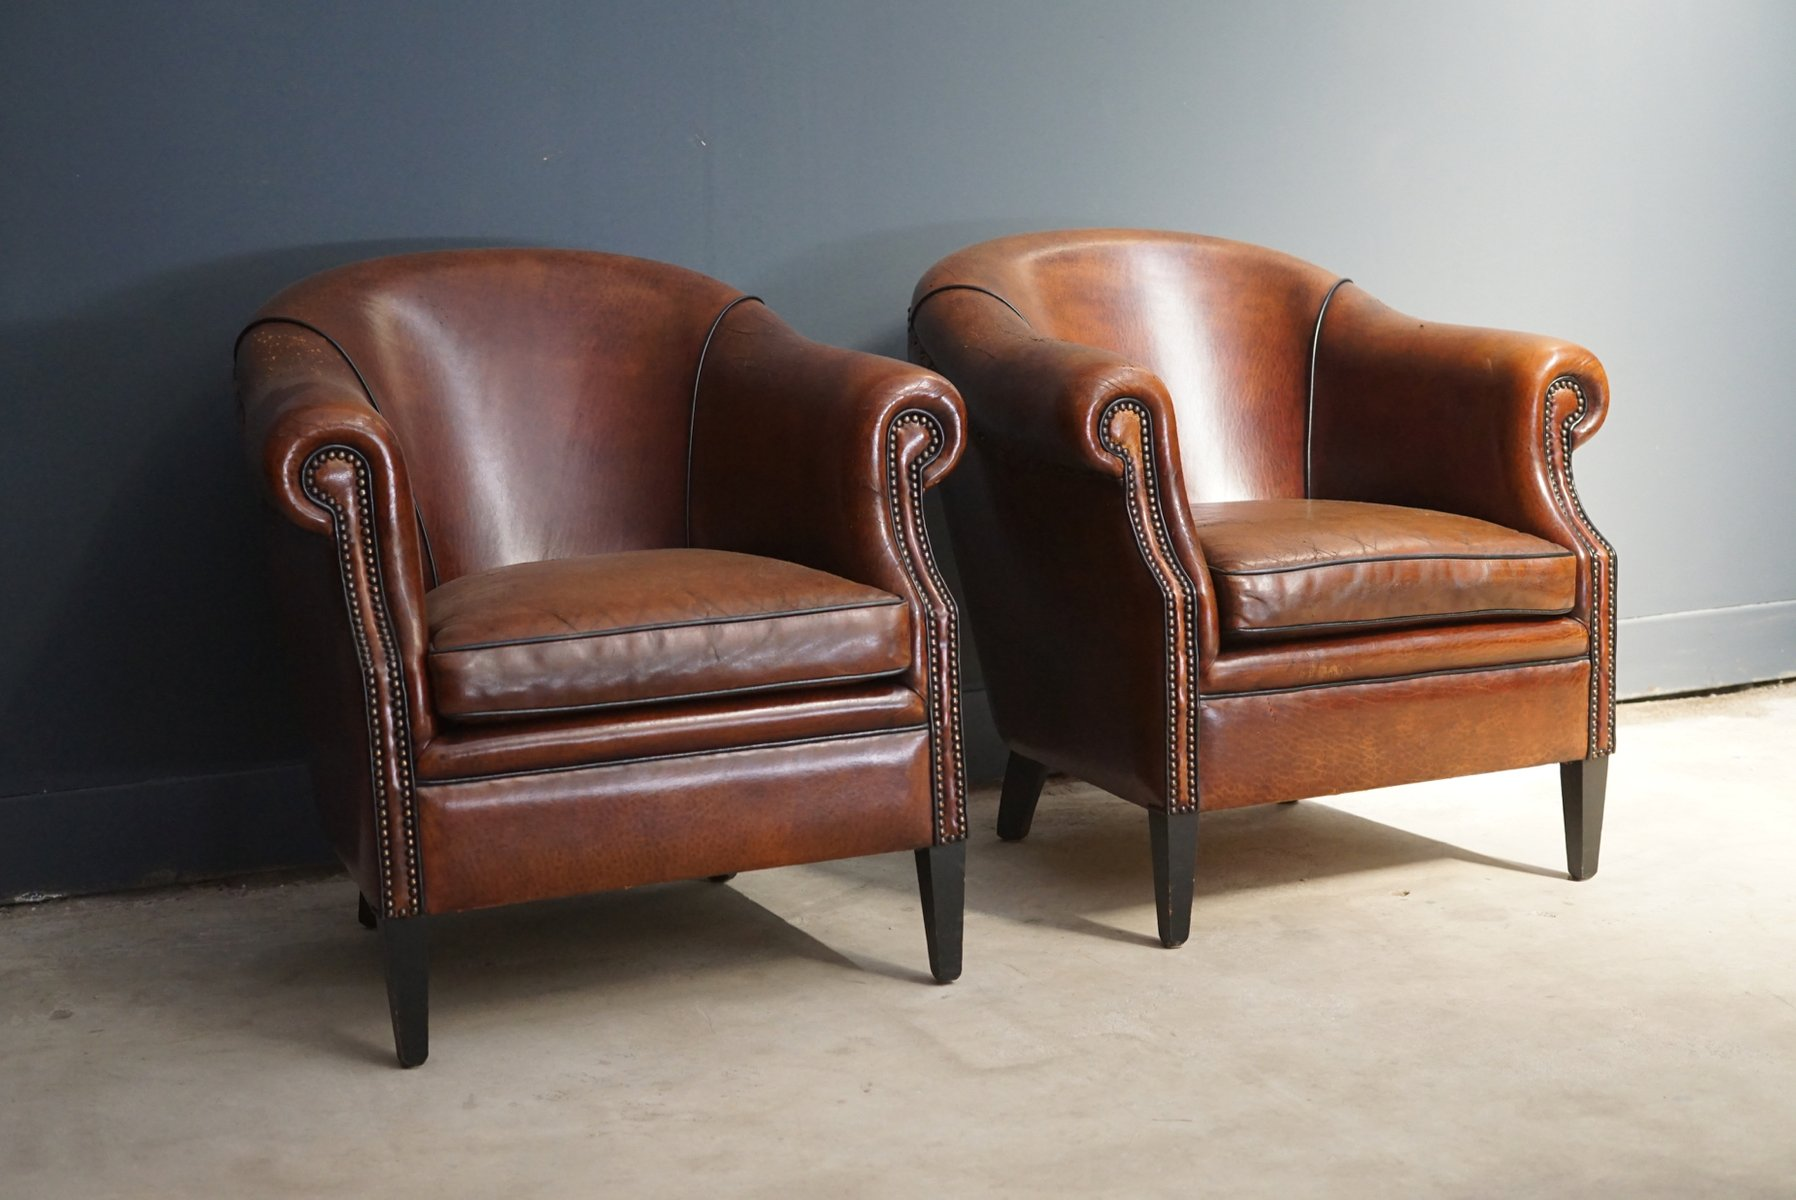 Vintage Club Chairs Vintage Cognac Leather Club Chairs Set Of 2 For Sale At